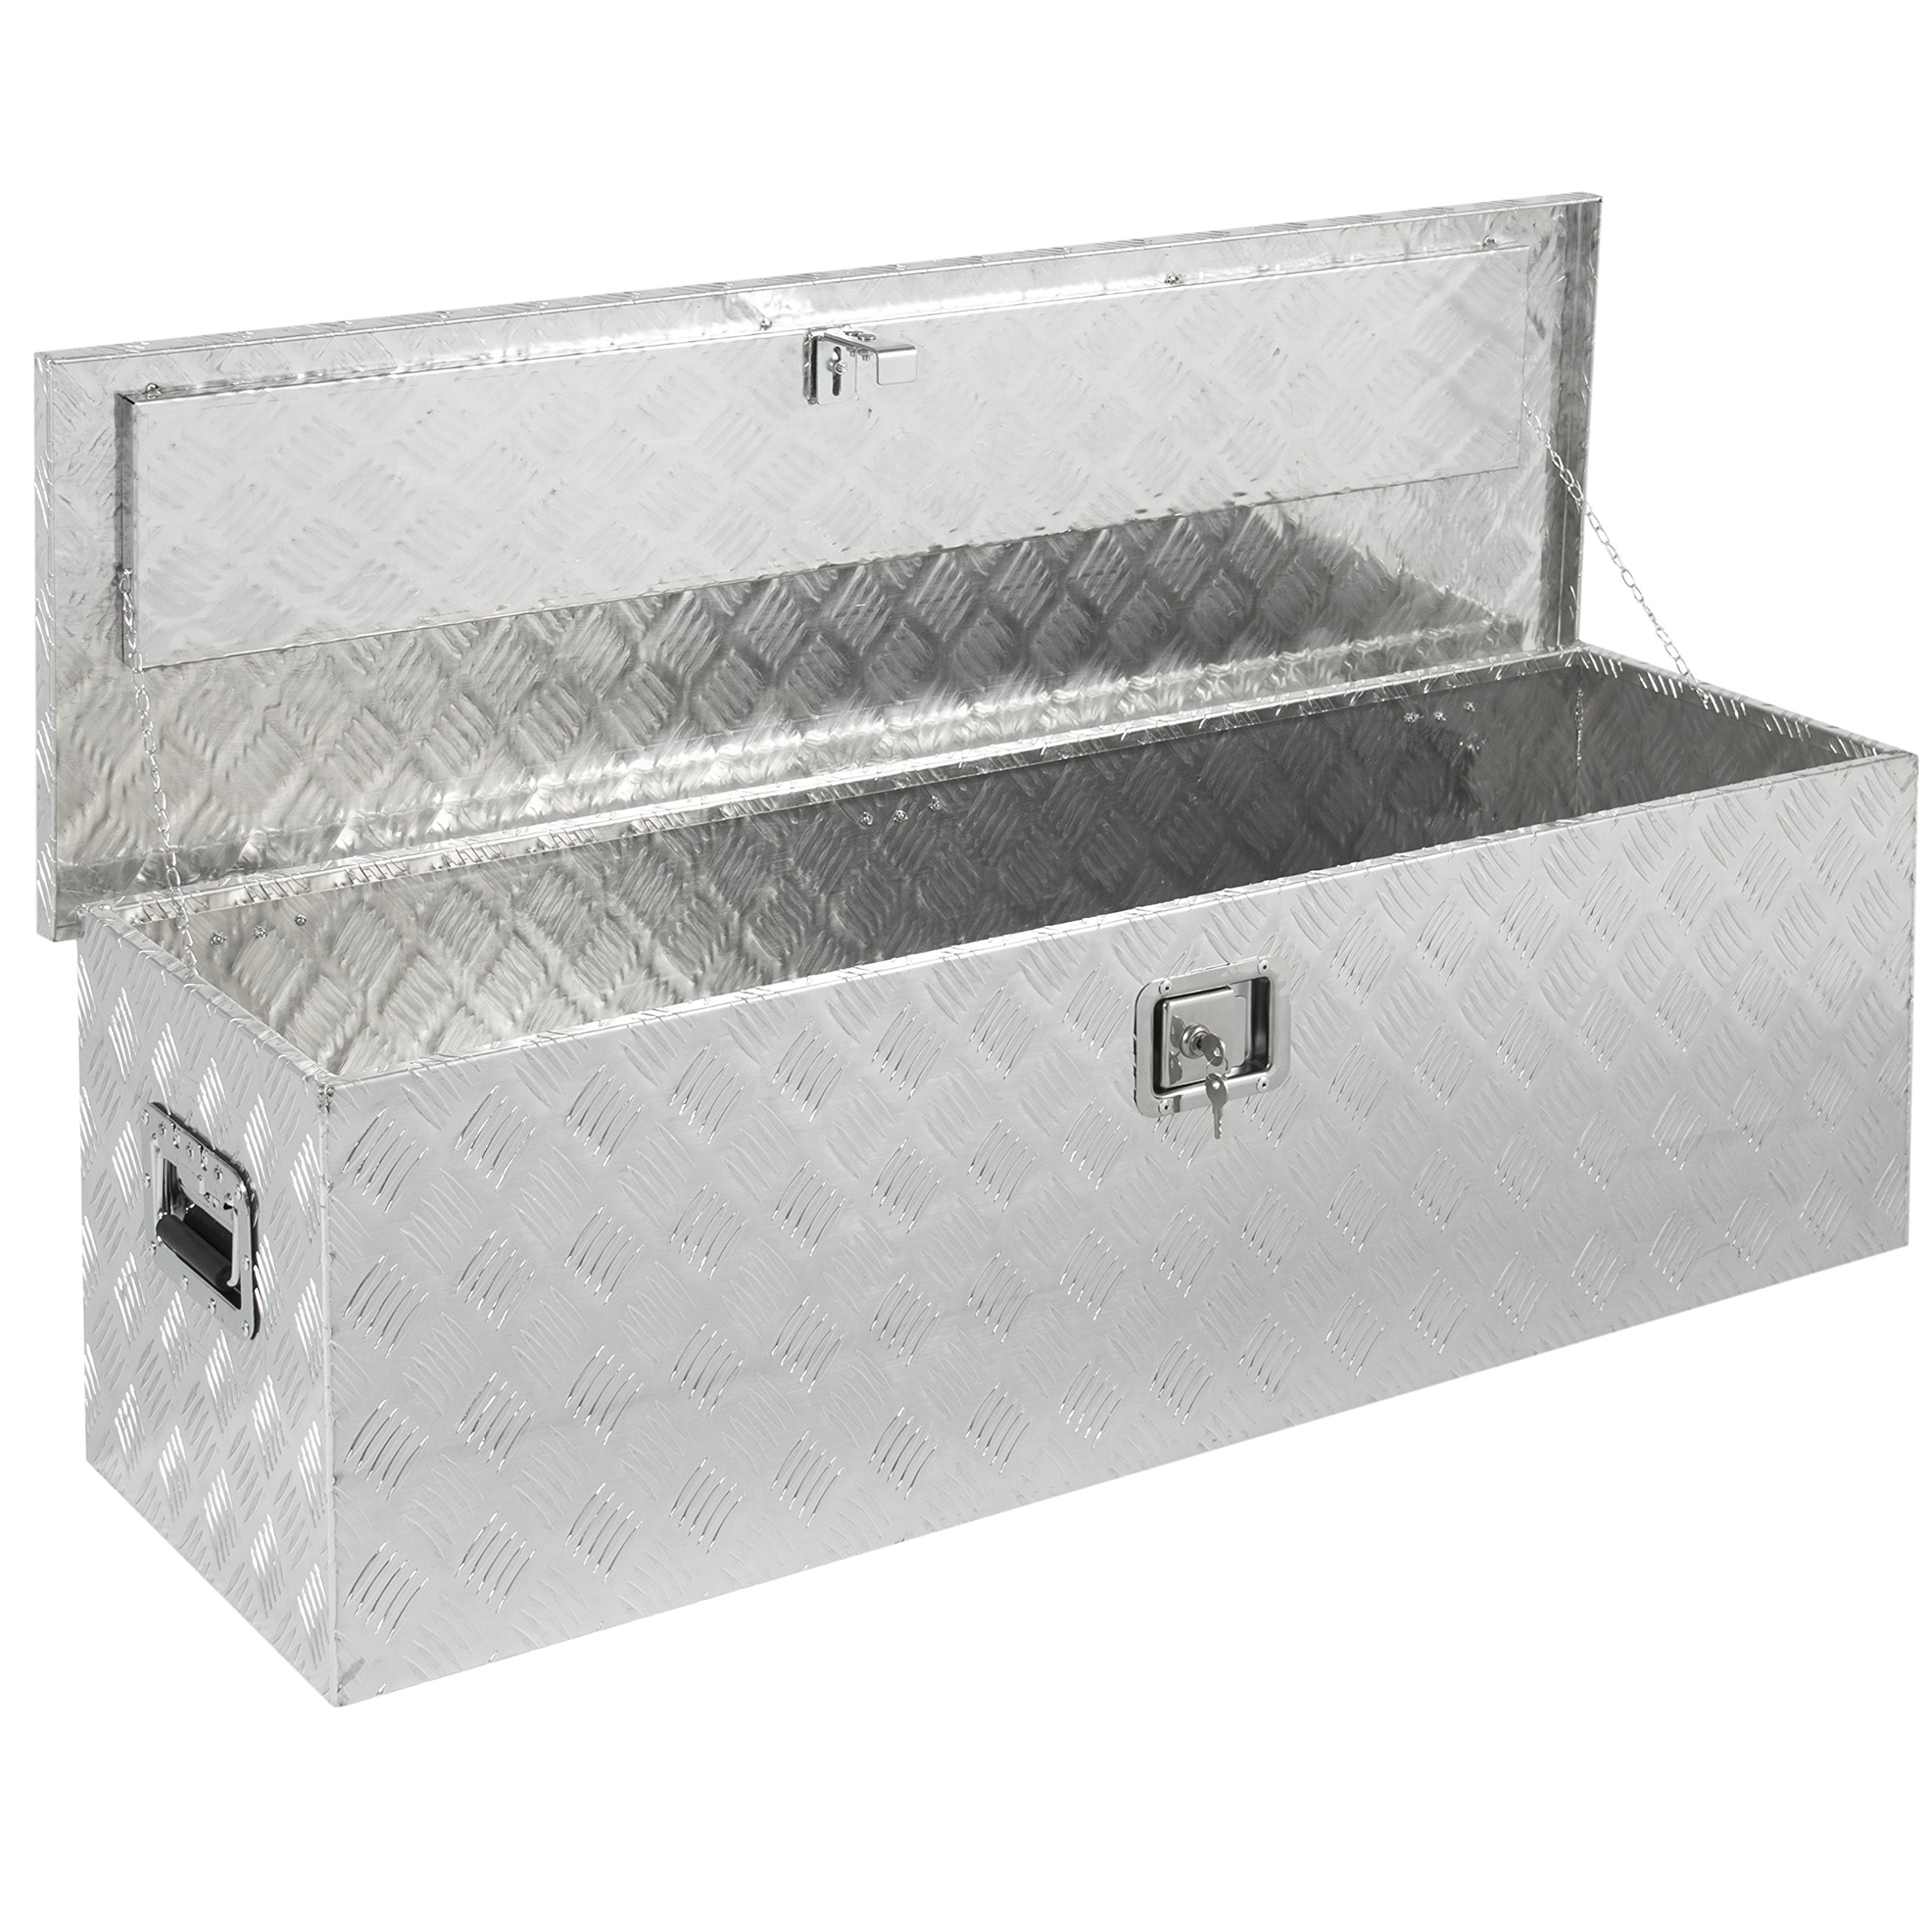 Best Choice Products 49'' Aluminum Camper Tool Box W/ Lock Pickup Truck Bed ATV Trailer Storage